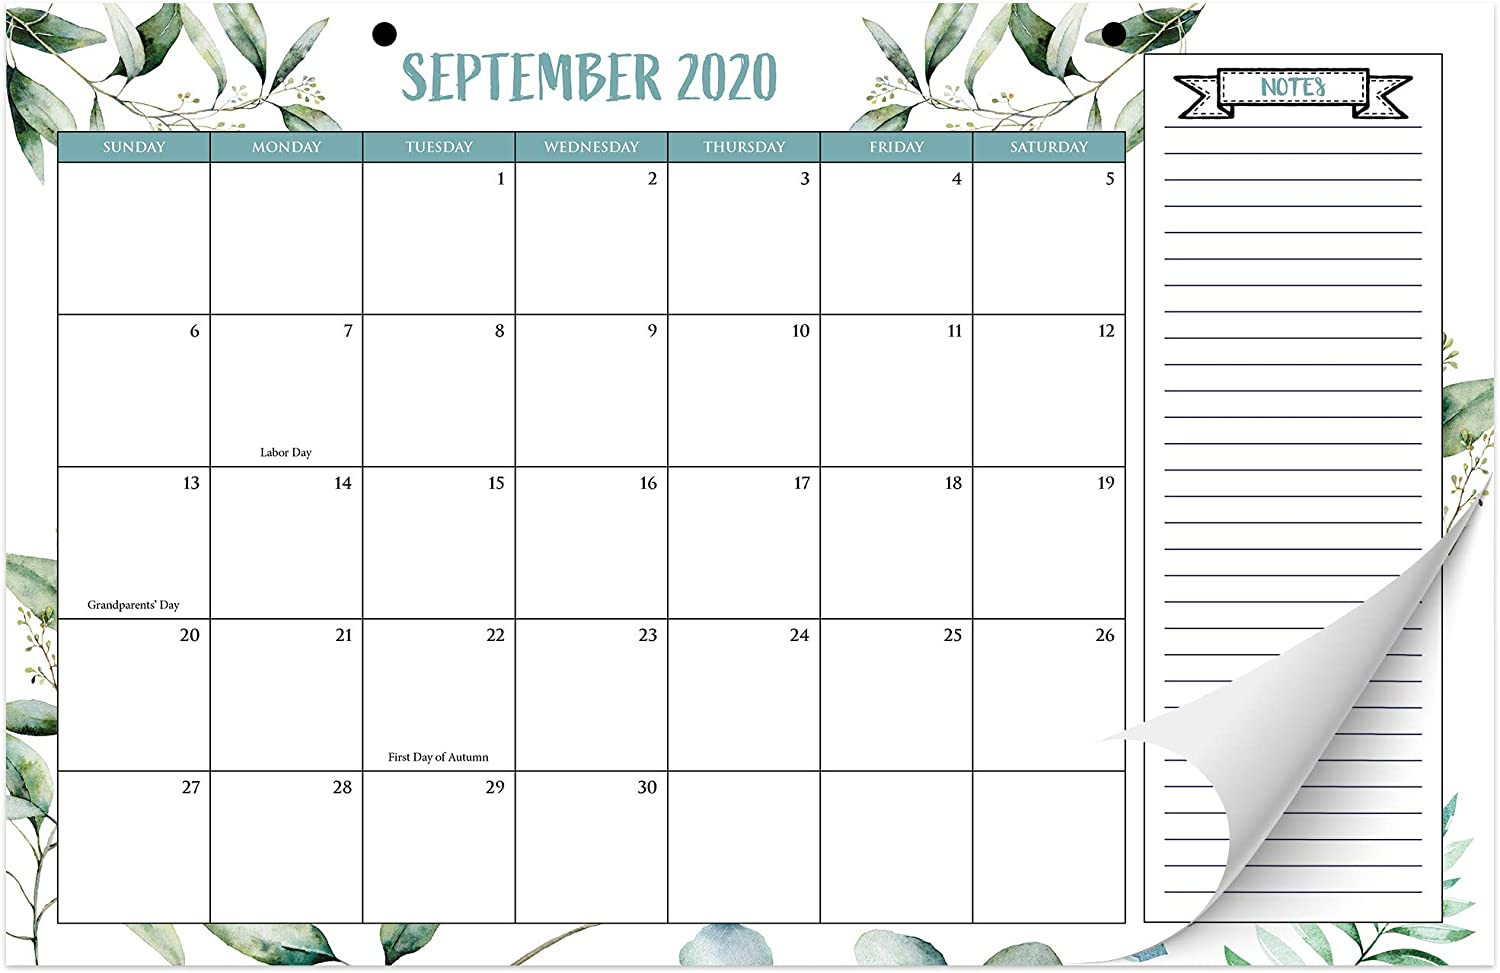 "Beautiful 2020-2021 Greenery Desk Calendar 17"" x 11"" - 18 Month Desktop/Wall Calendar with Note Section for Easy Planning Until August 2021"